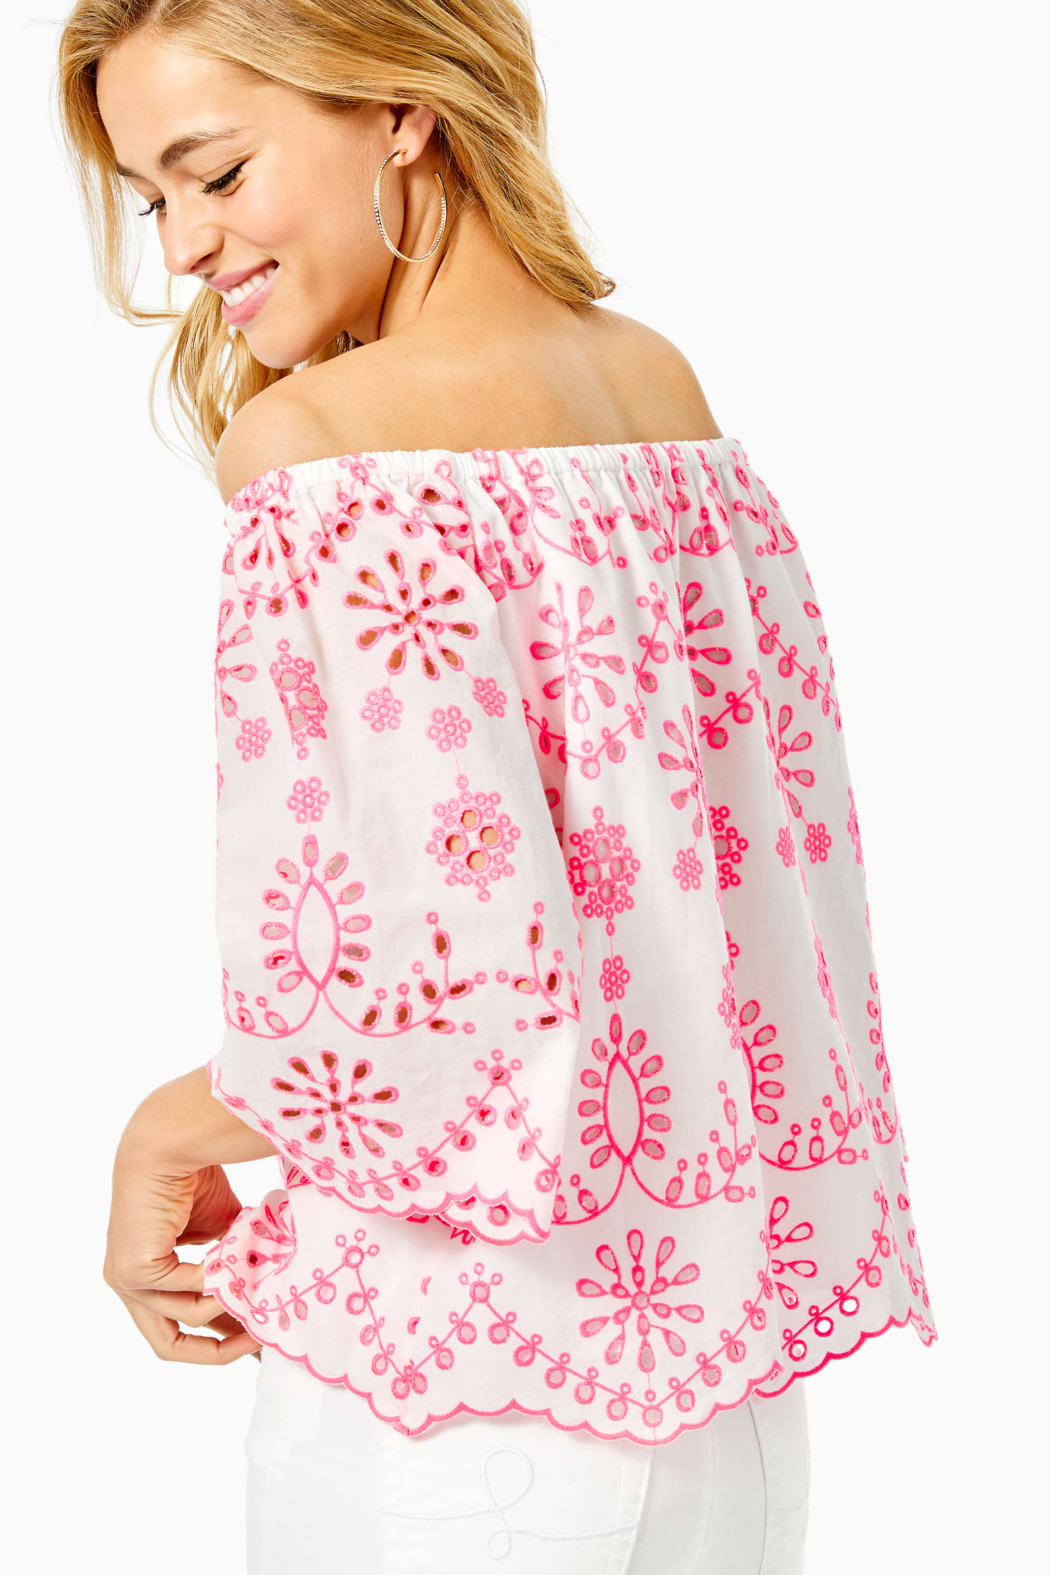 Lilly Pulitzer Laurenne Eyelet Top - Front Full Image